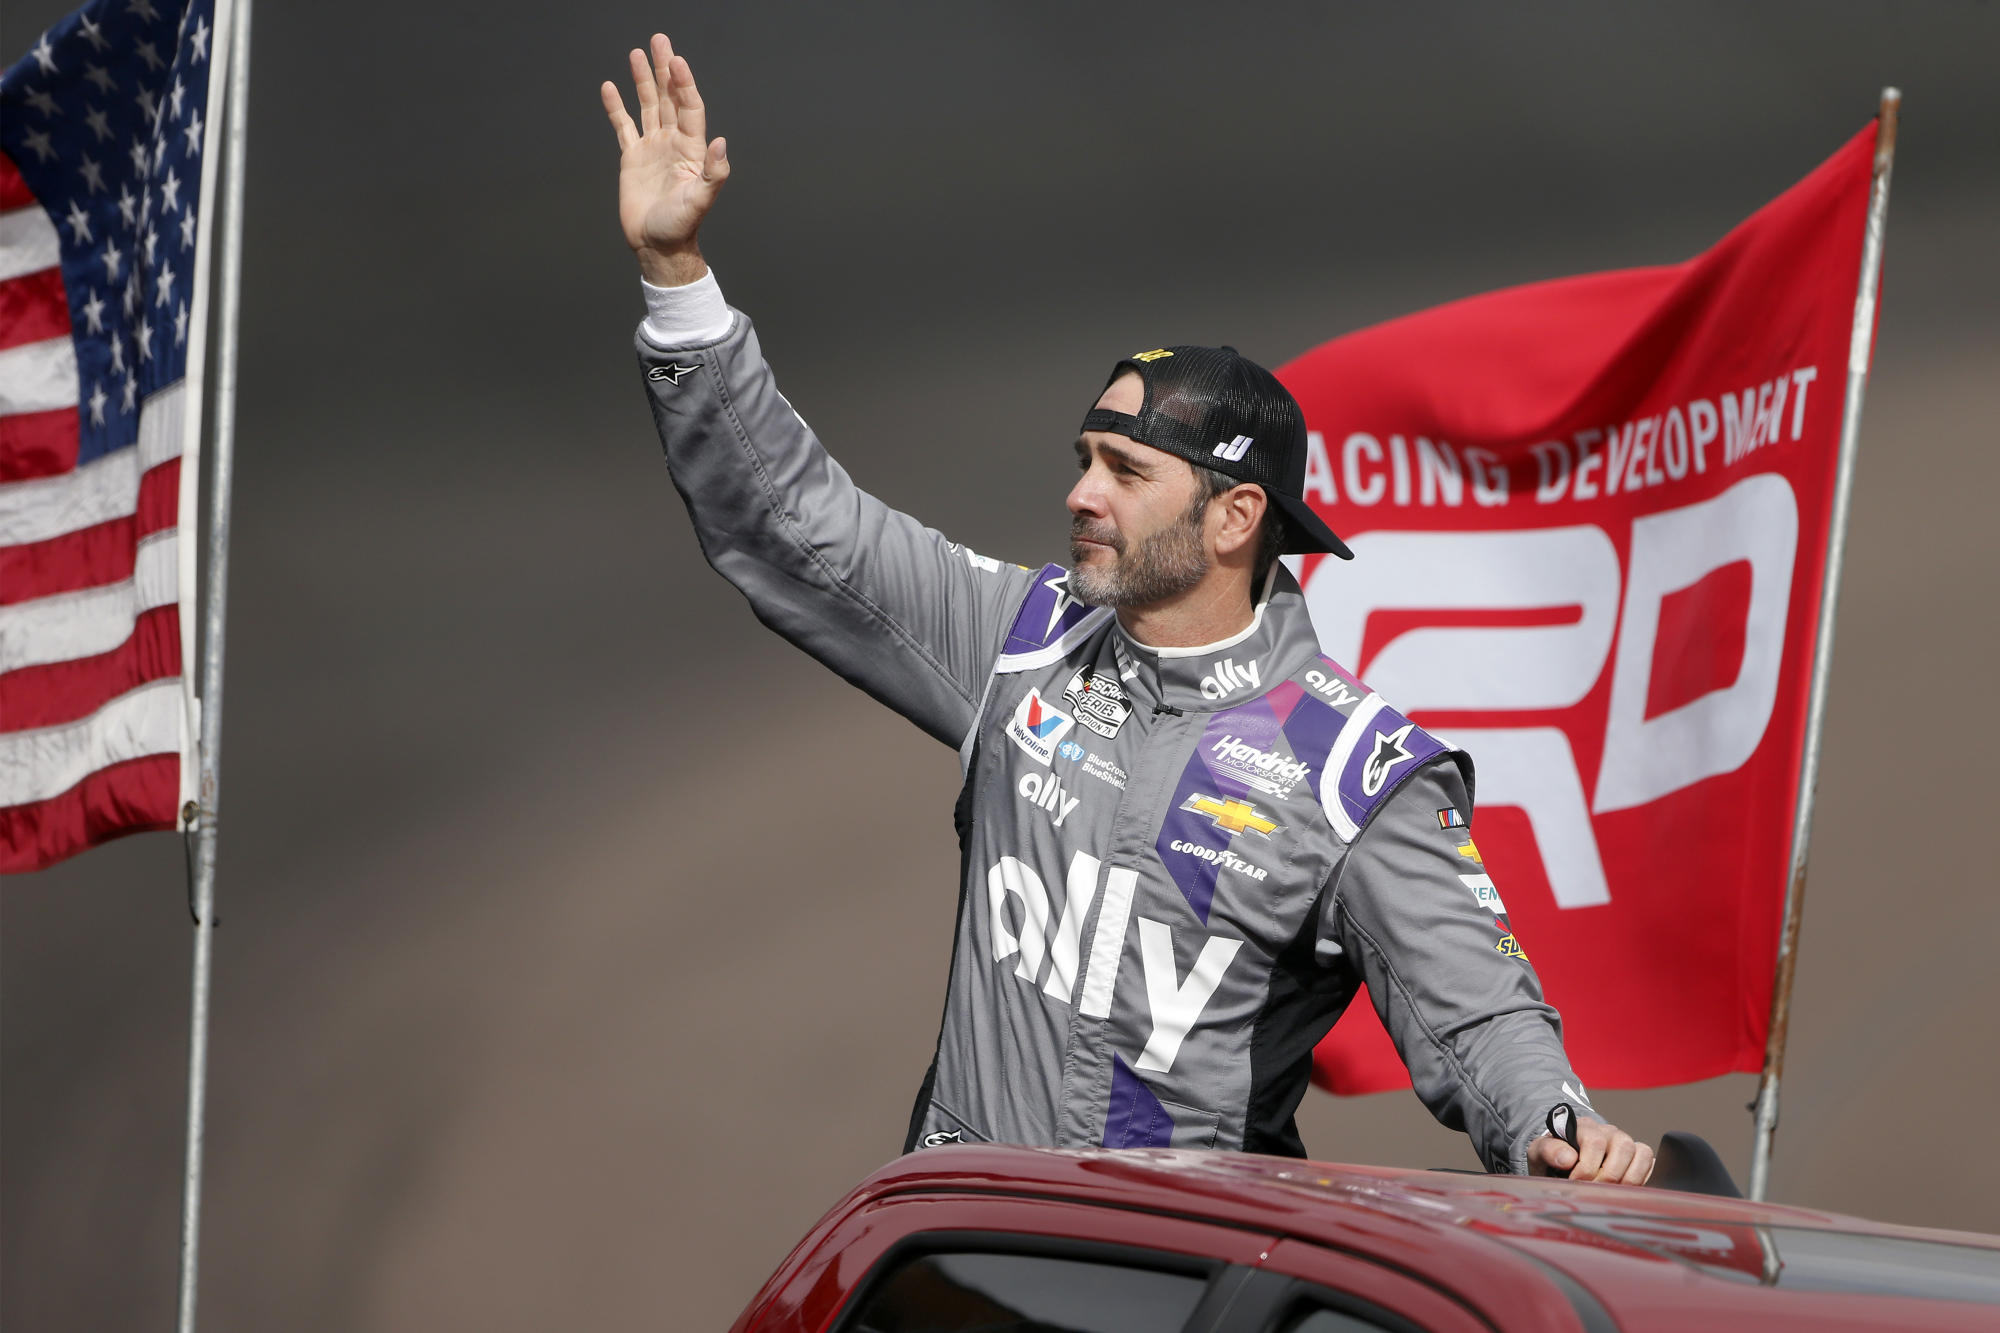 Jimmie Johnson, living the dream, leaps from NASCAR to IndyCar